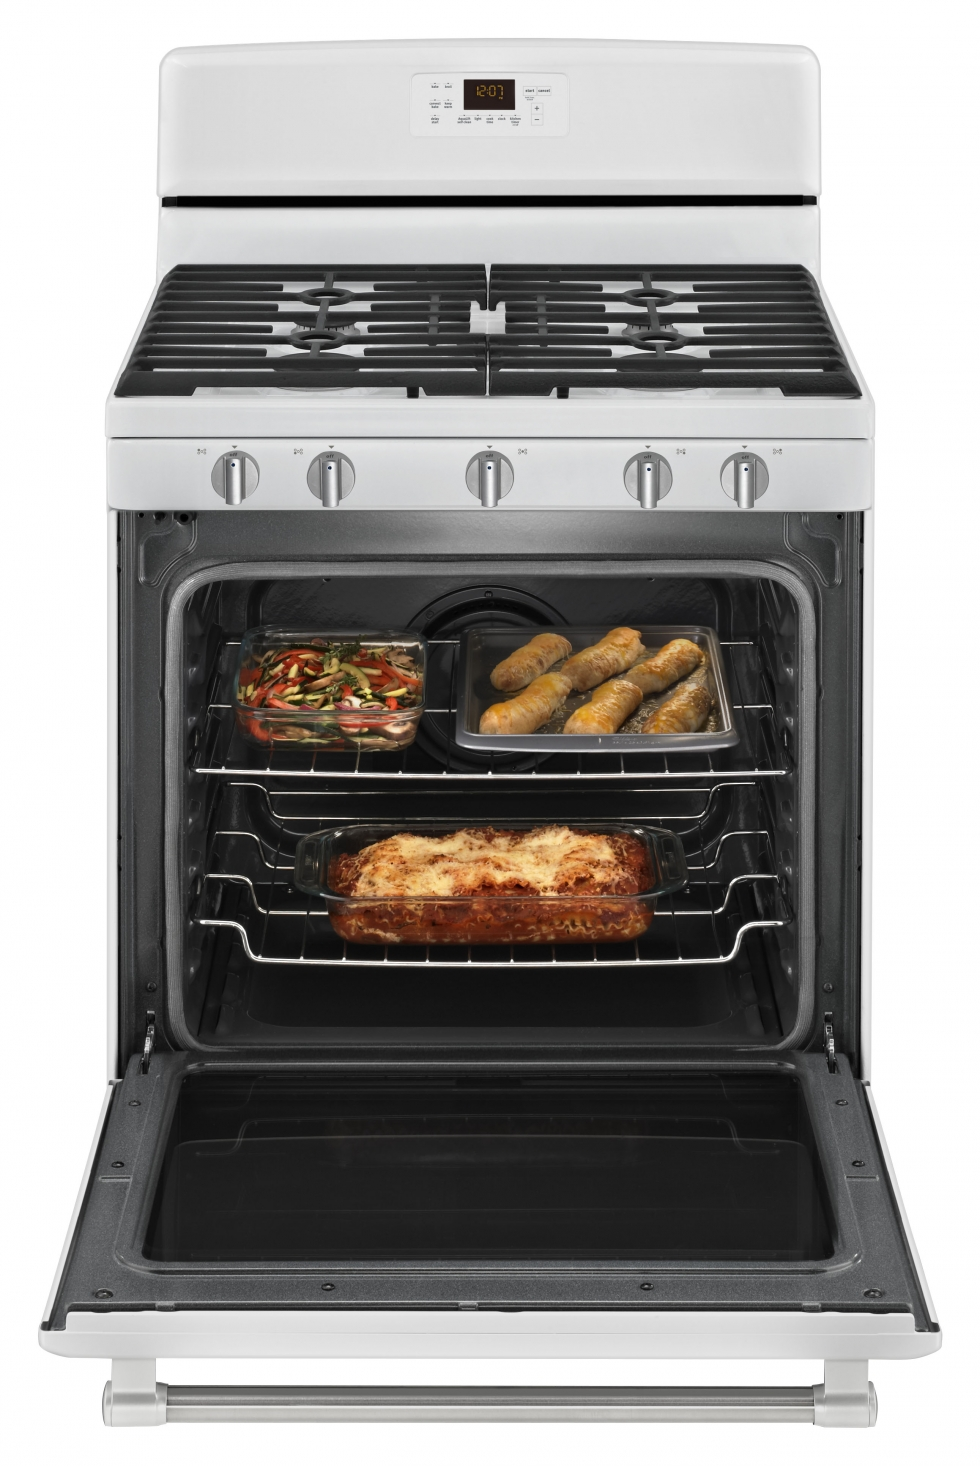 Maytag GAS RANGE WITH CONVECTION OVEN White with Stainless